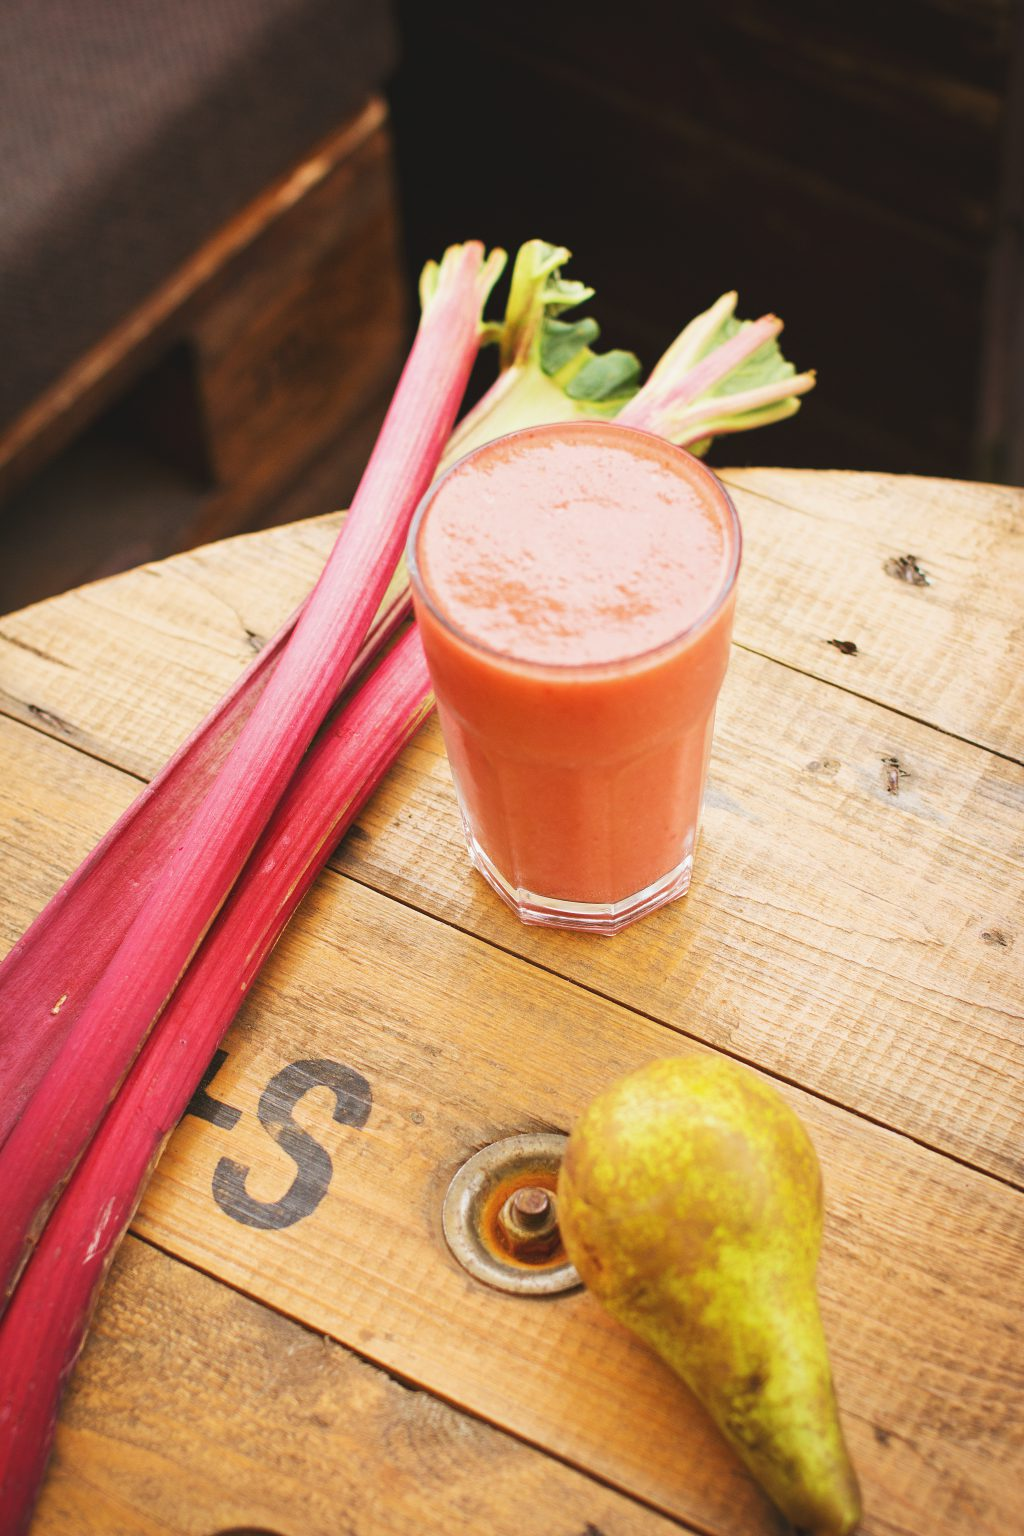 Pear and rhubarb smoothie 6 - free stock photo